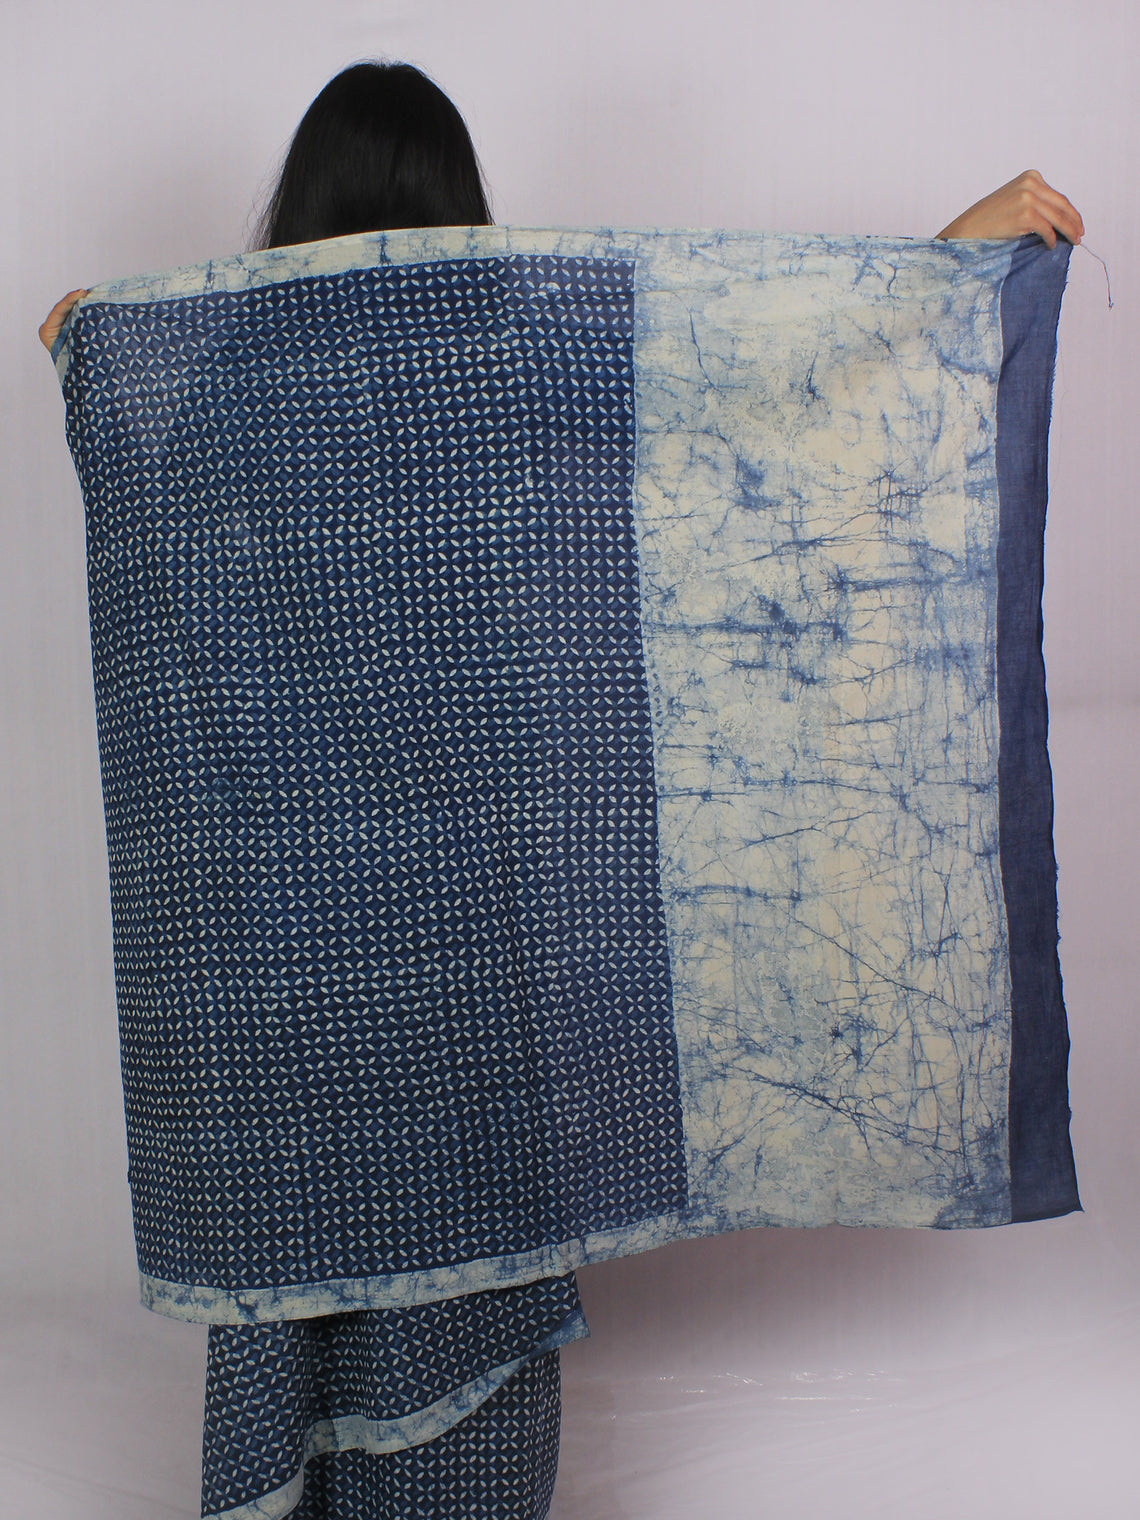 Indigo Ivory Cotton Hand Block Printed & Hand Painted Saree in Natural Colors - S031701182